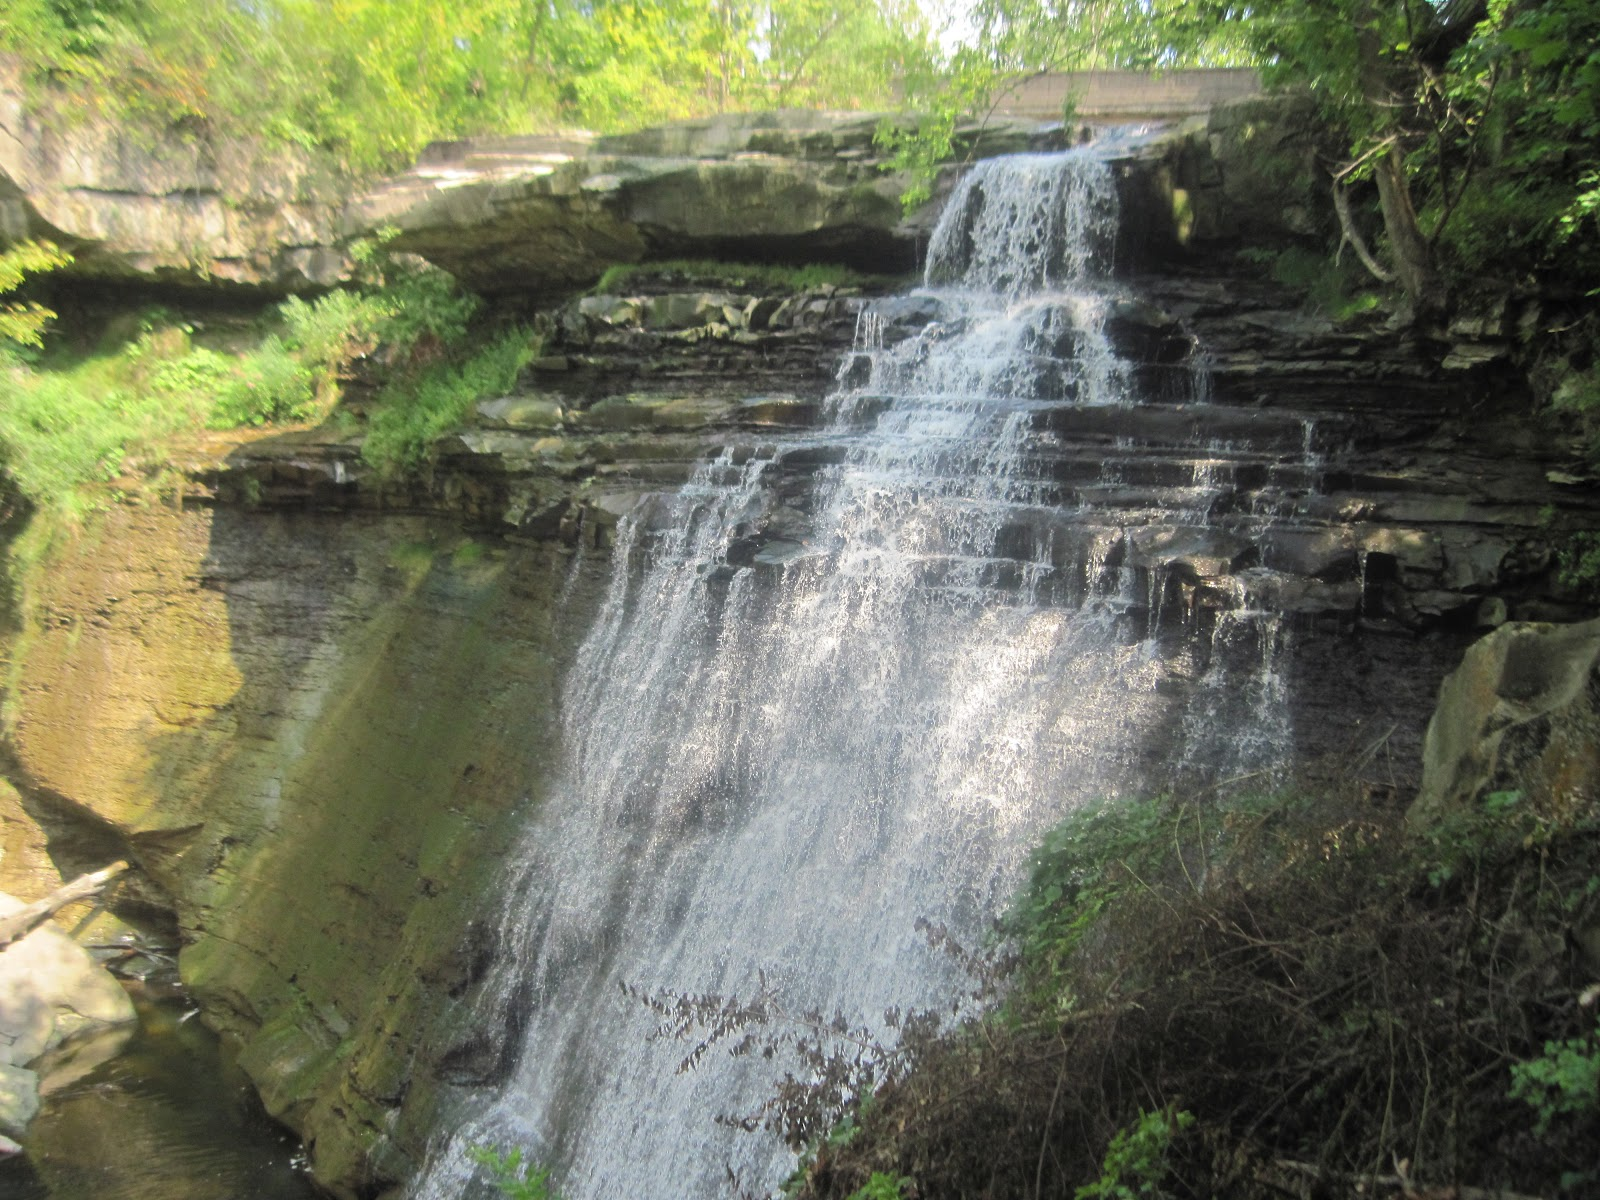 Despite being an urban park, Cuyahoga Valley National Park abounds in